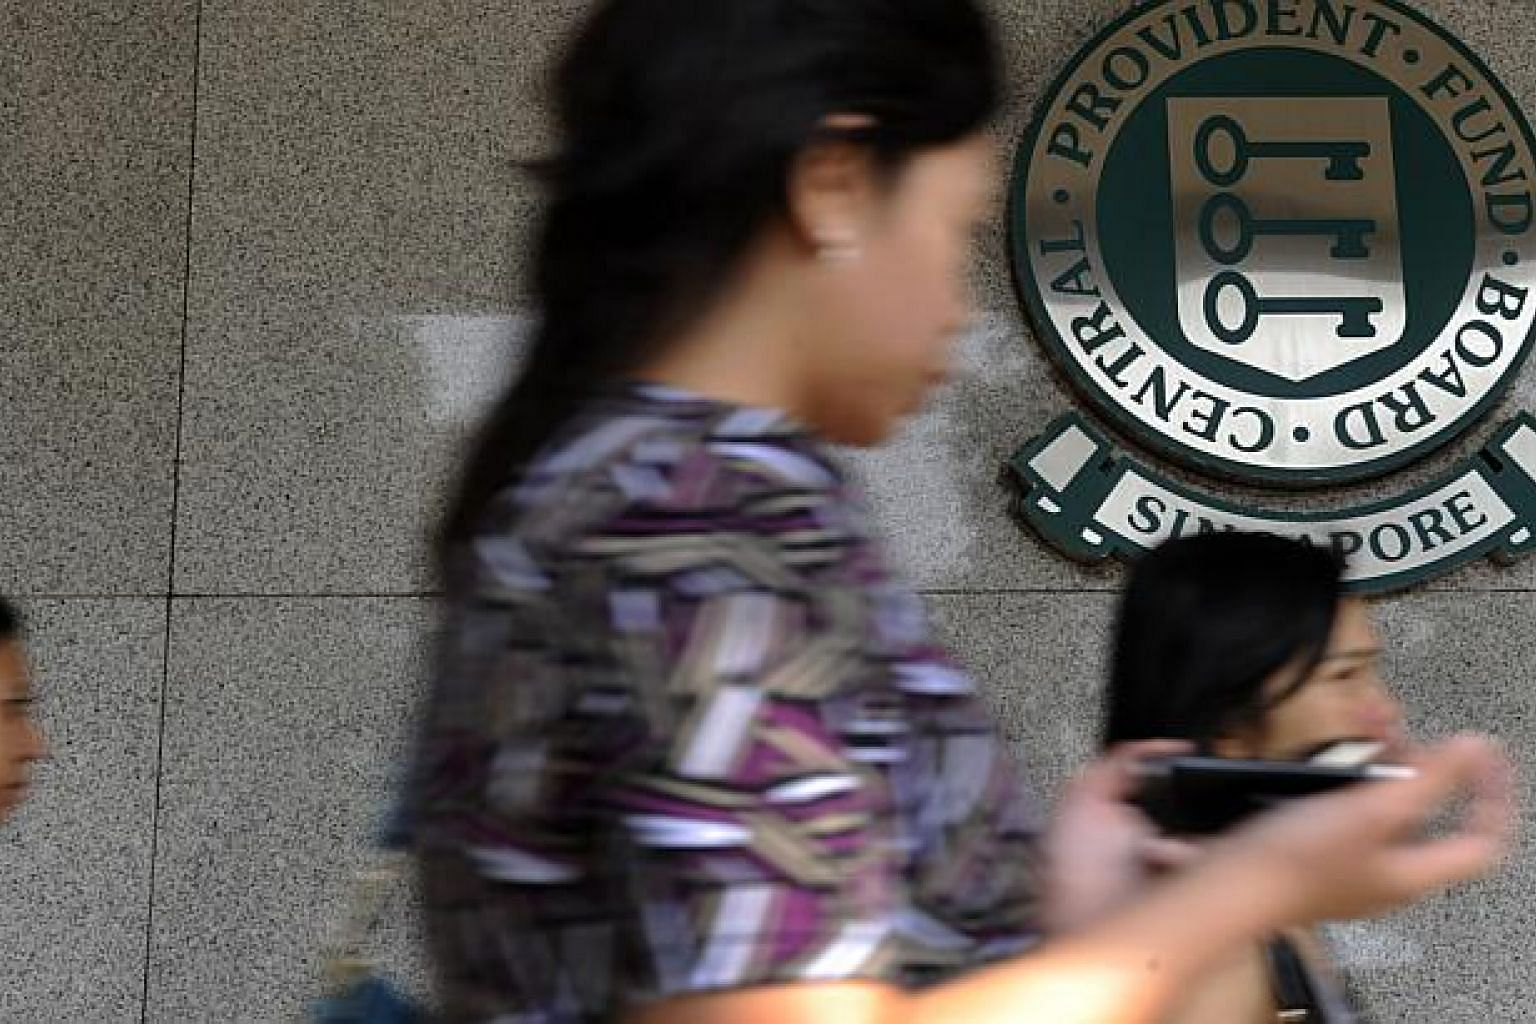 Central Provident Fund (CPF) members should be able to withdraw up to 20 per cent of their savings when they become eligible for monthly payouts at 65, the panel reviewing the scheme has recommended. -- PHOTO: ST FILE